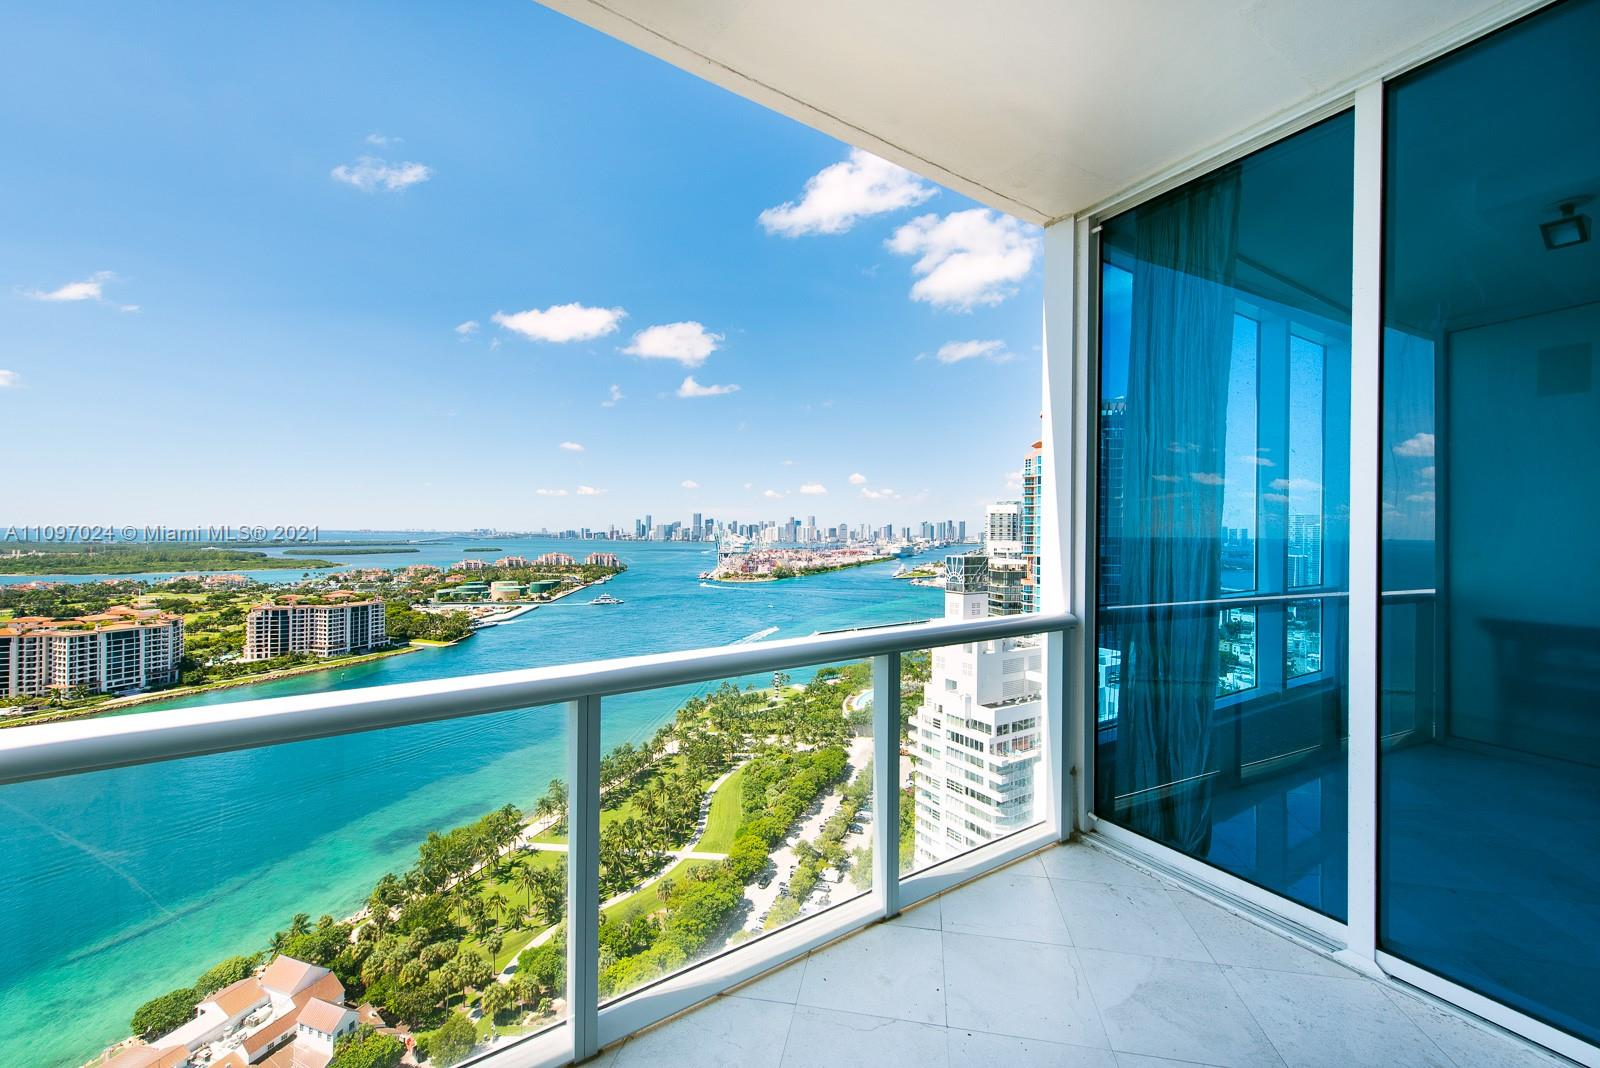 Desirable '02 line spacious layout residence with private foyer, open kitchen and floor to ceiling windows displaying unobstructed amazing views of Fisher Island, Cruise Ship Alley, ocean and Downtown. Continuum continues to set standards for luxury urban living and white glove services. Direct beach access, beach club, on-site restaurant, 3-story fitness/spa, lagoon pools, lap pool and tennis courts with a pro-shop. All in South of Fifth. The most alluring neighborhood with its pristine beach, fine dining, marina and park.